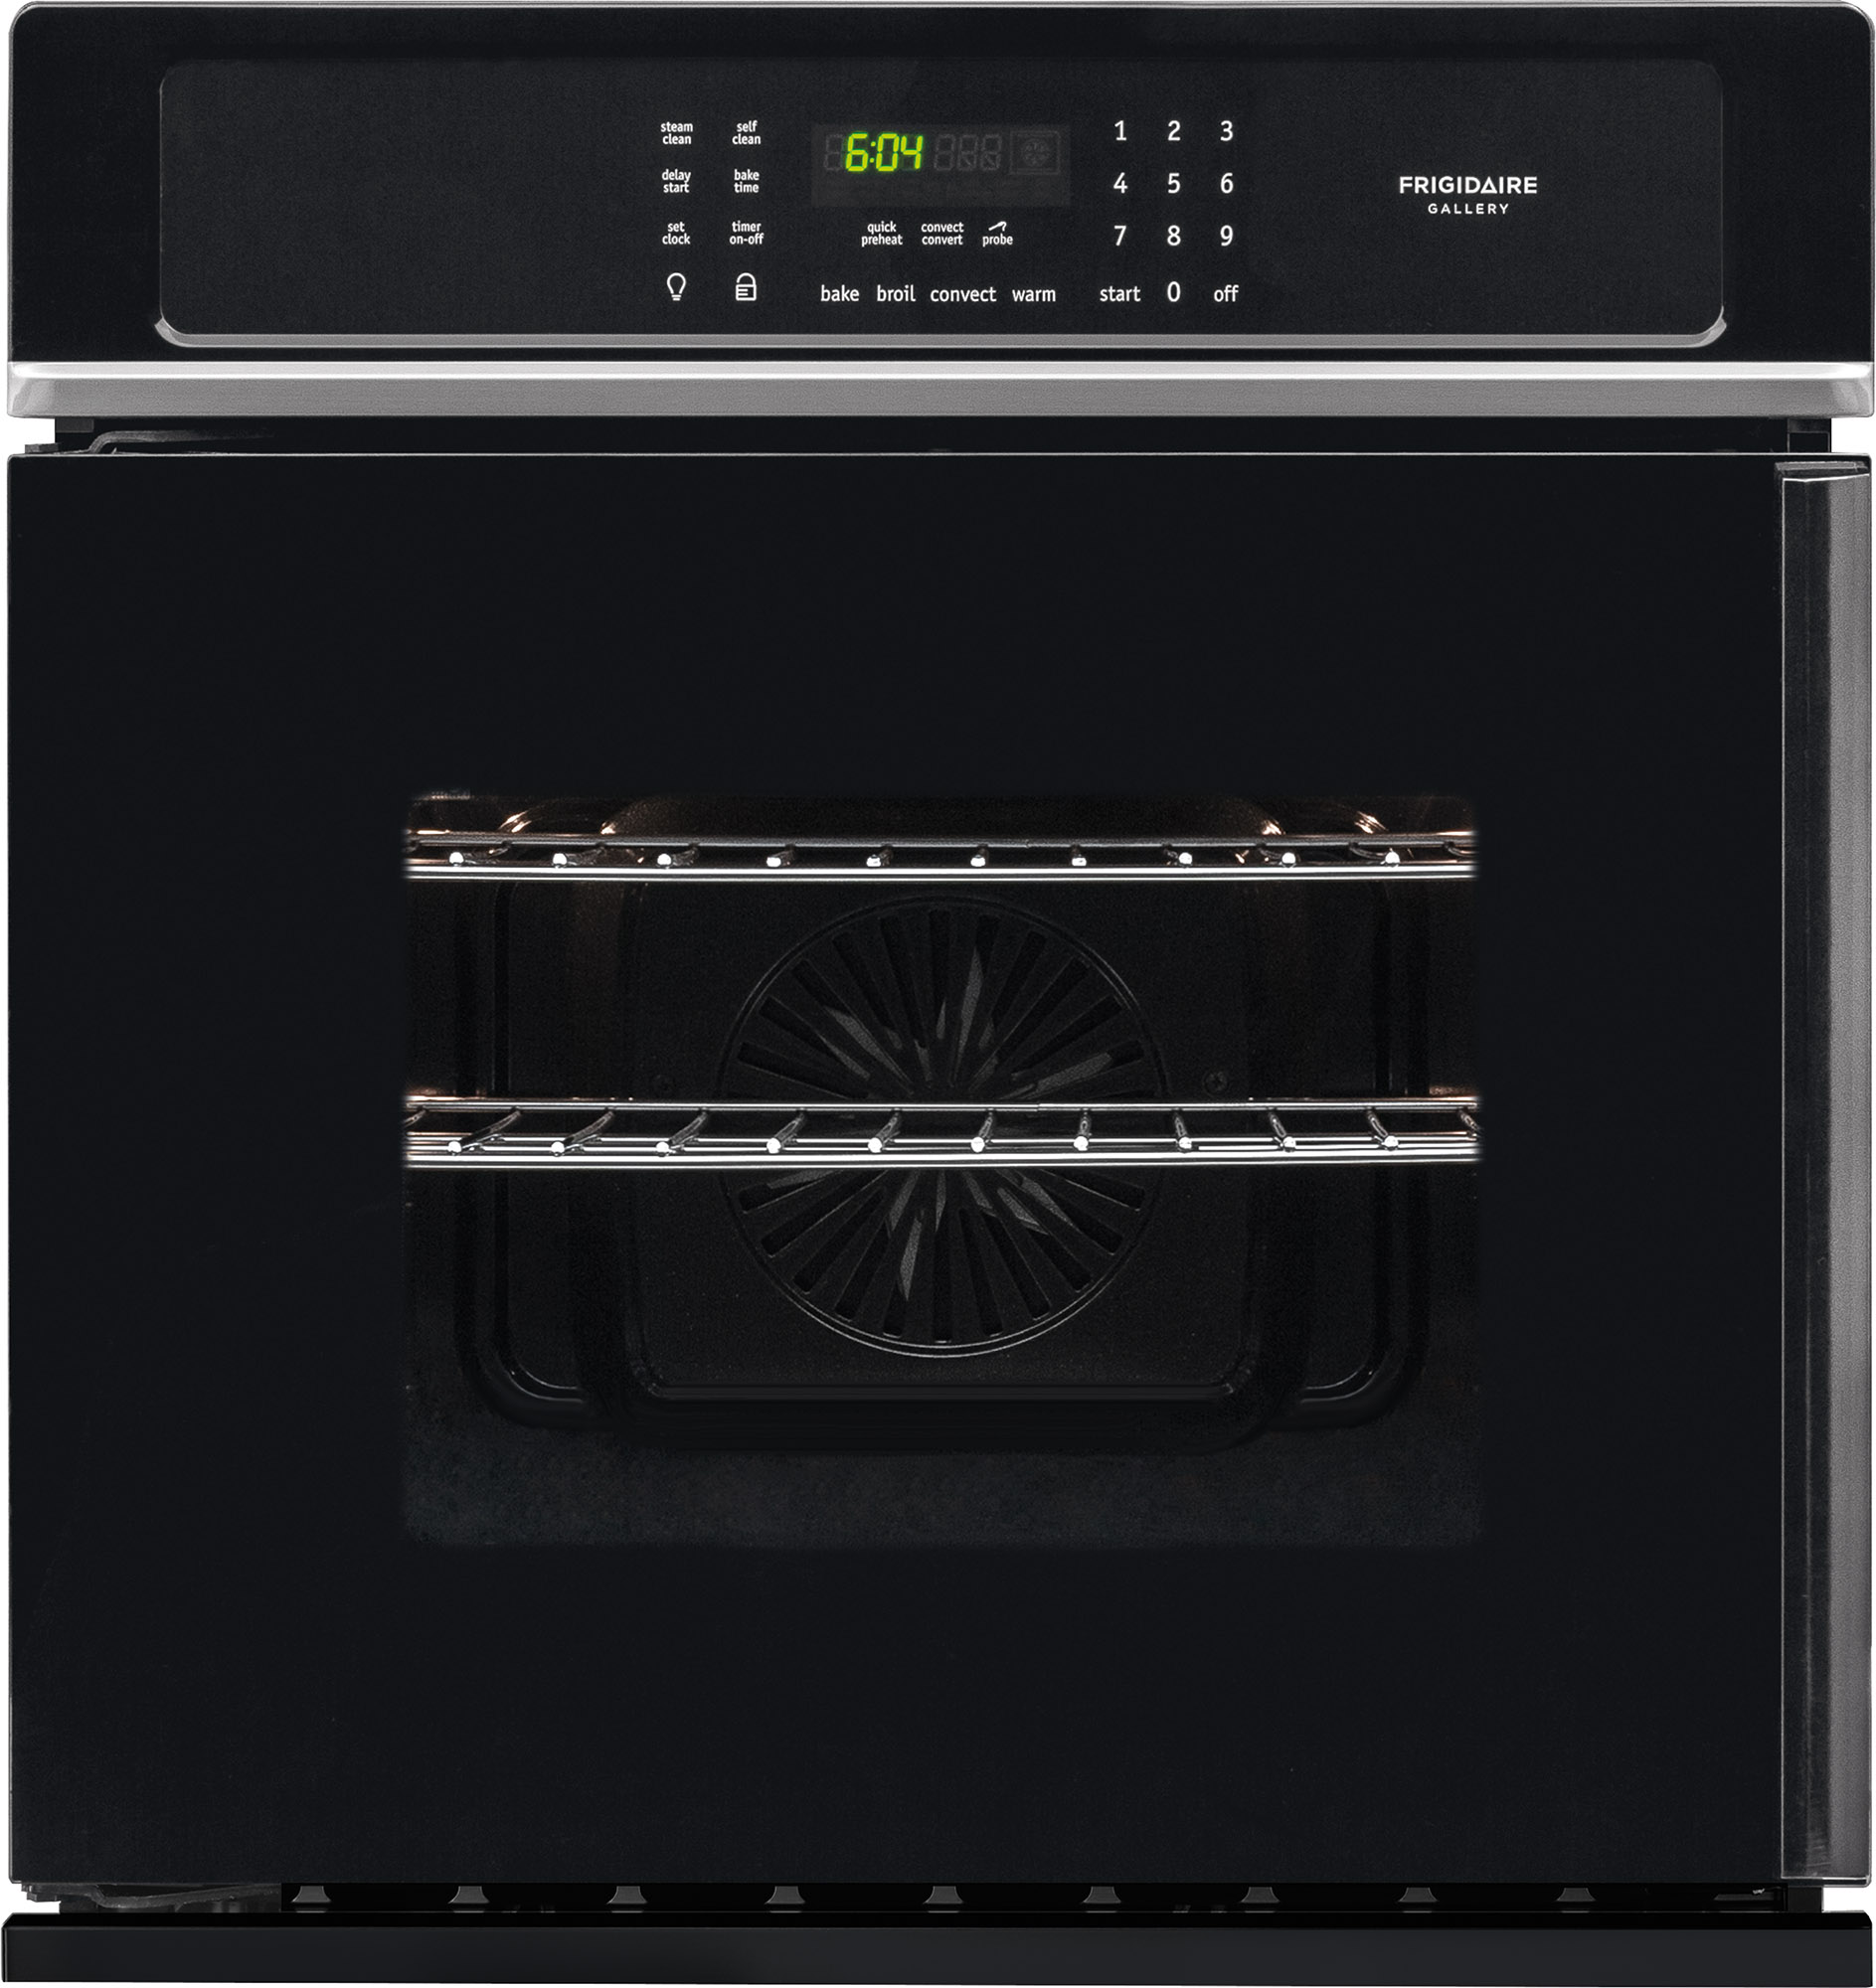 Frigidaire Gallery 27 Single Electric Wall Oven Black Fgew276spb 1450 Microwave Schematic Image Touch Control Panel Circuit